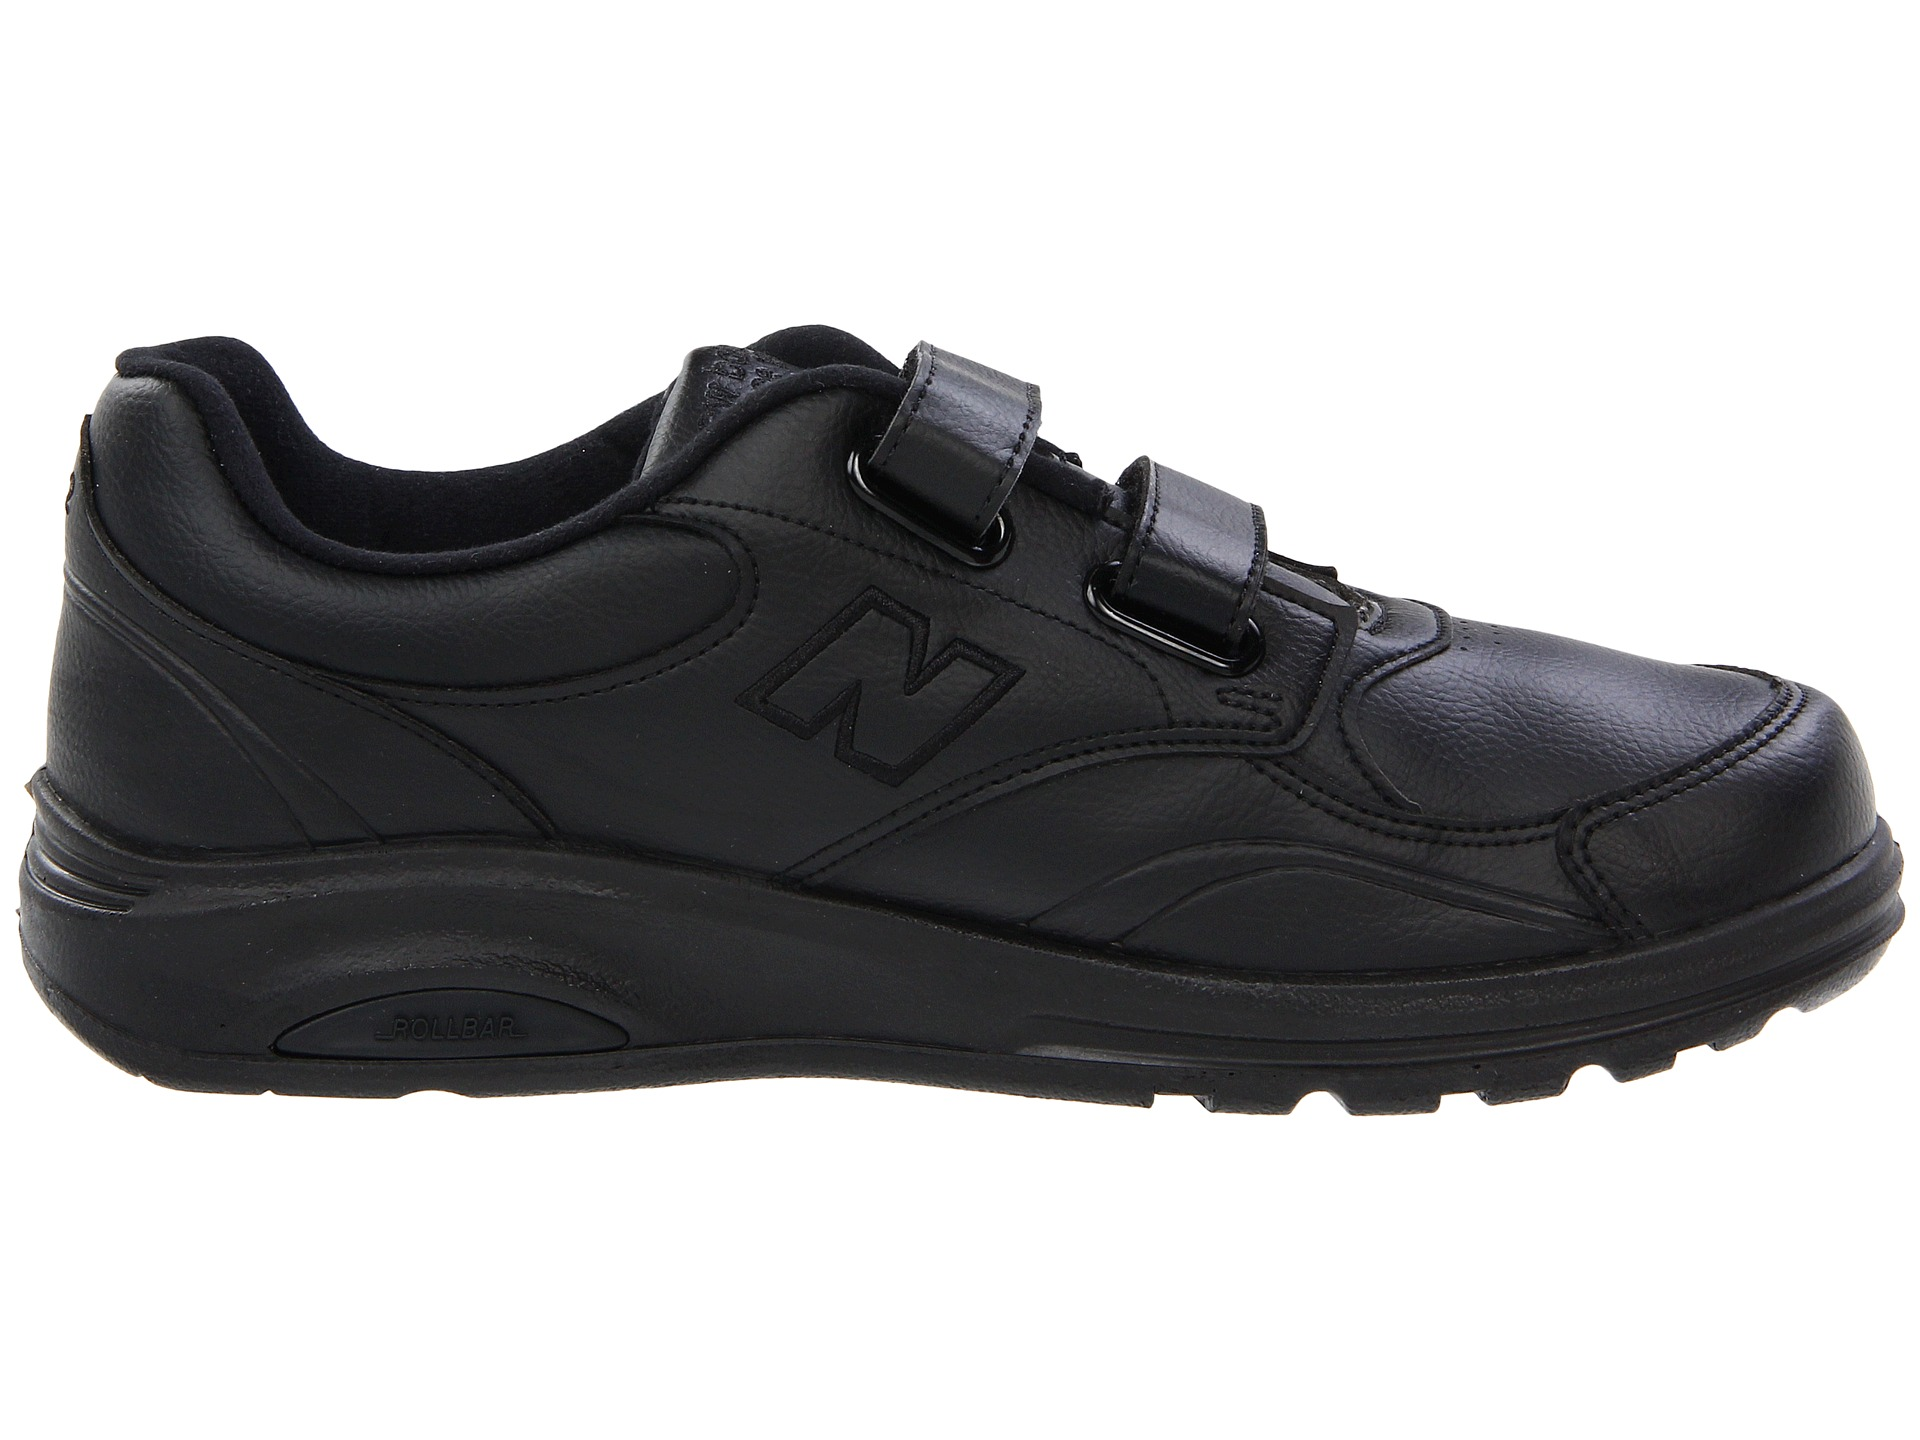 Womens New Balance Walking Shoes With Velcro